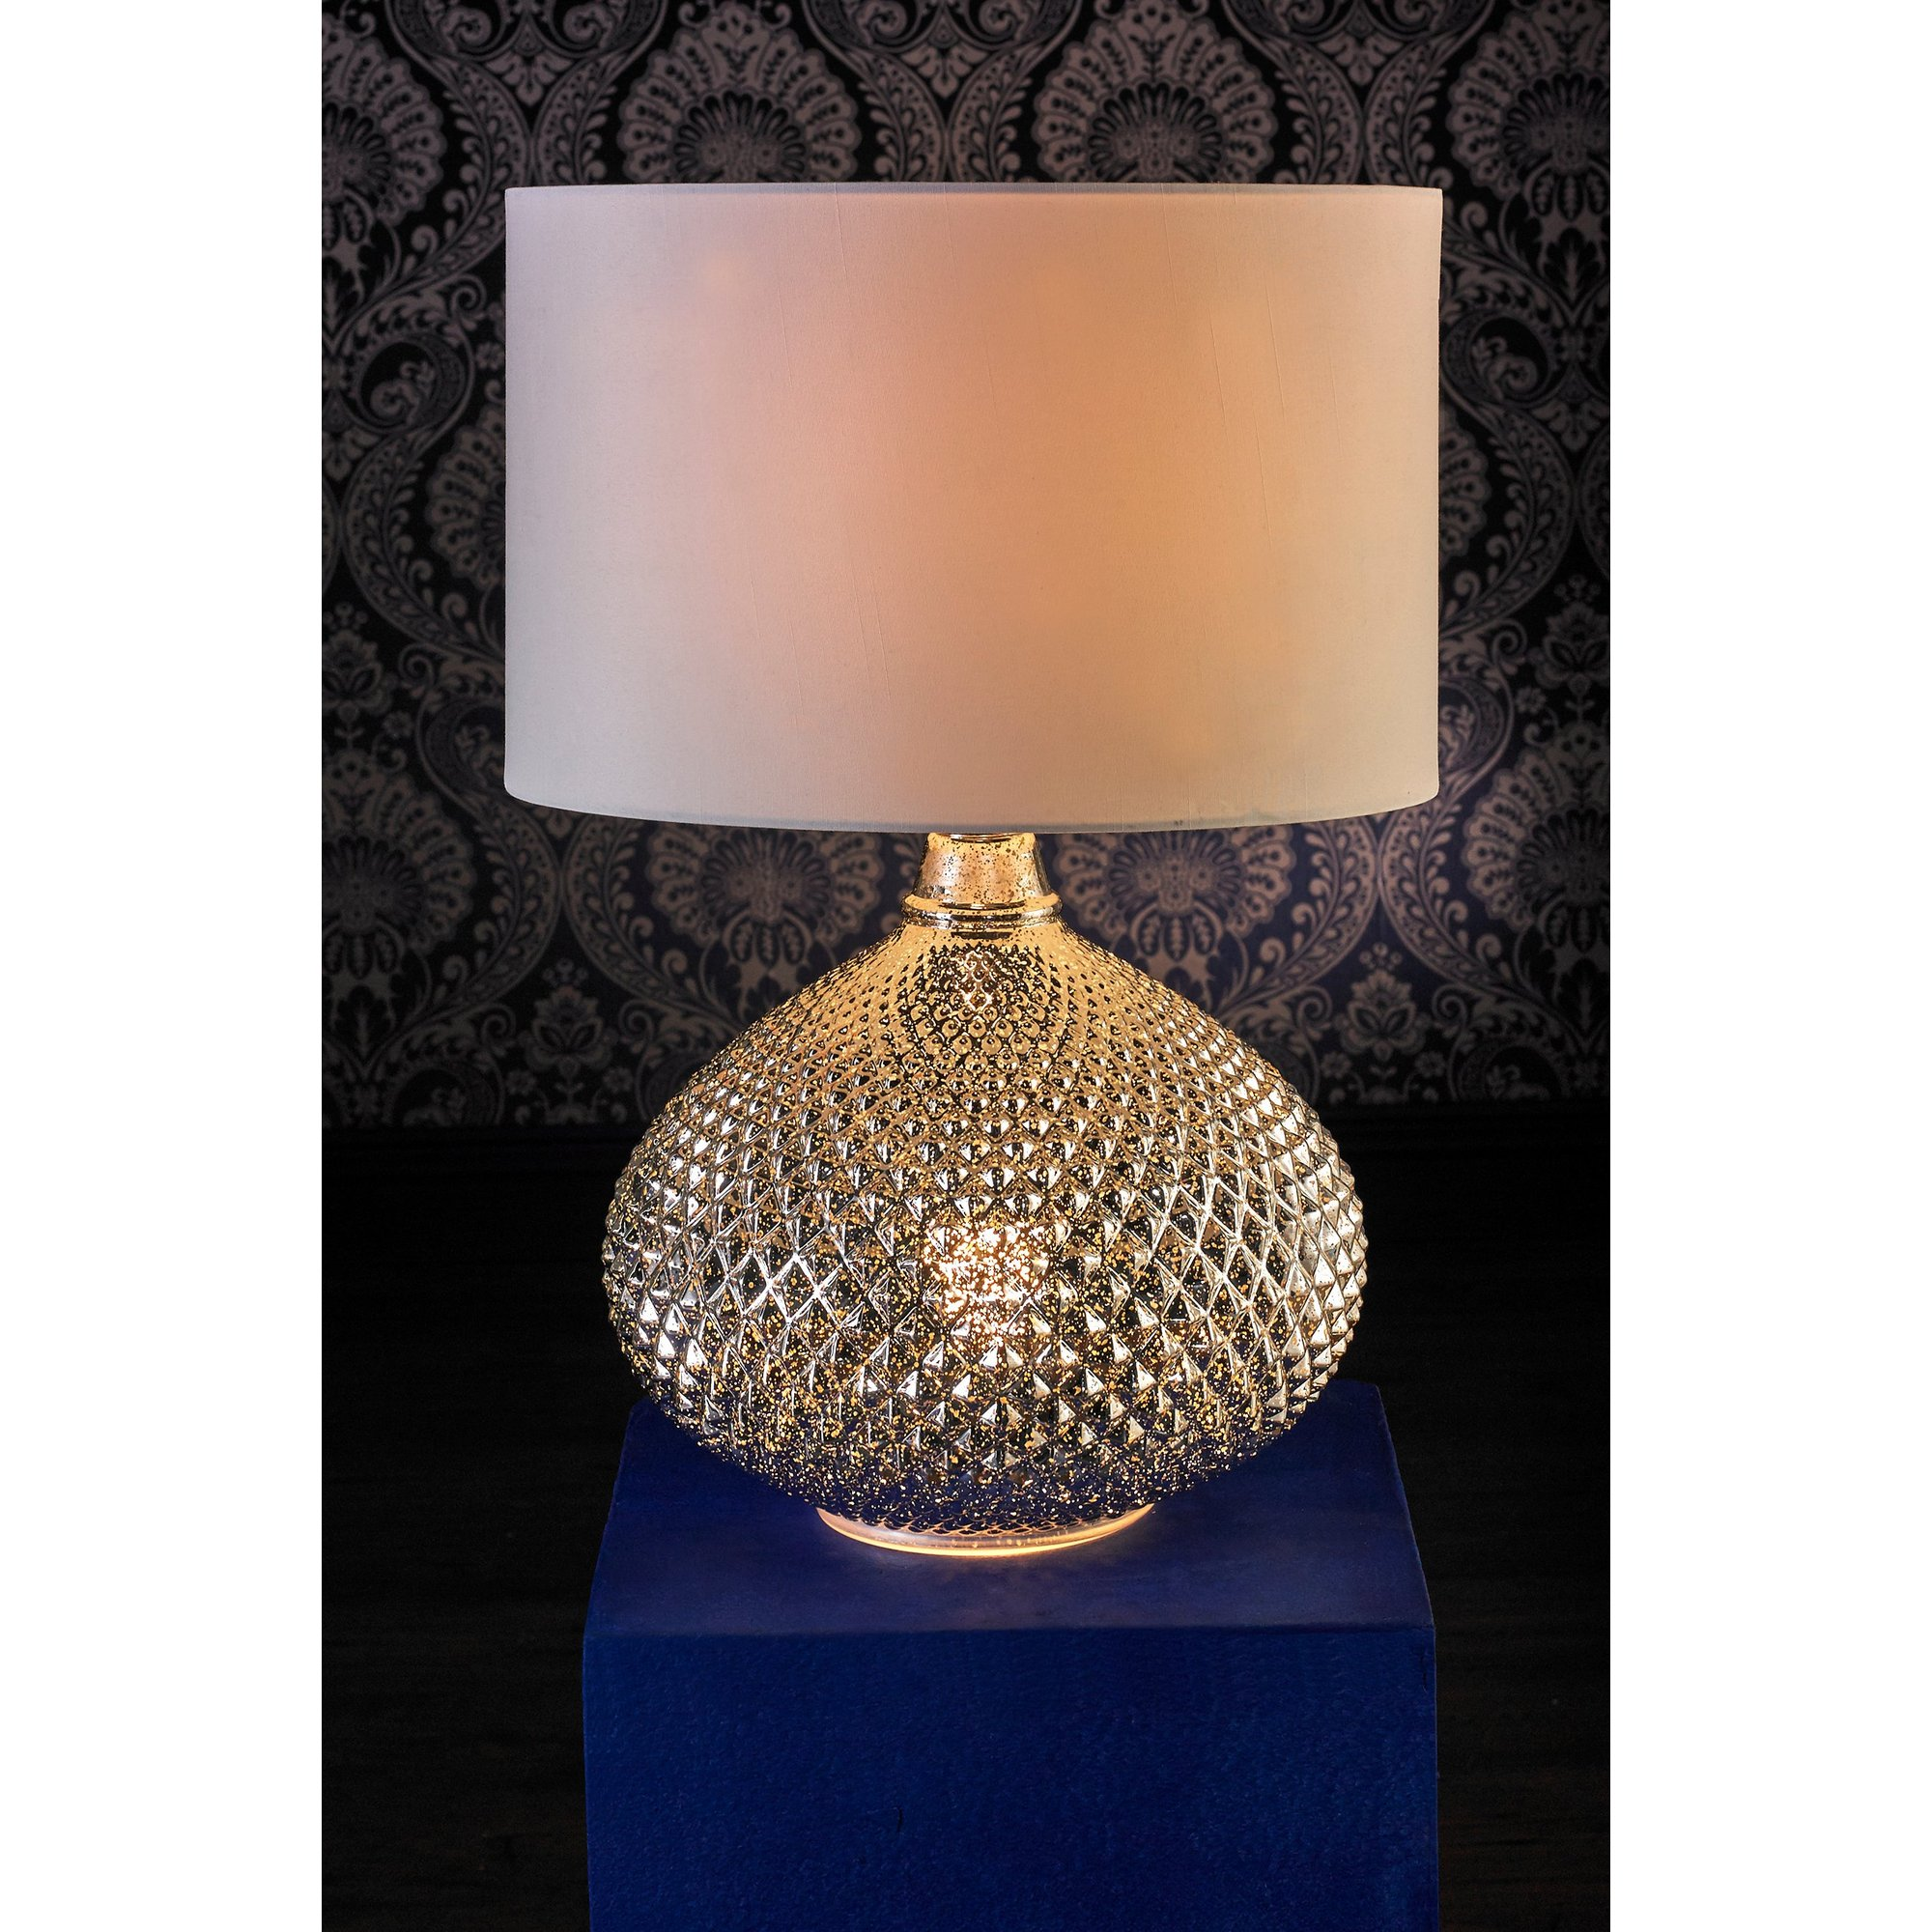 Image of Ambience Table Lamp with Light-Up Base